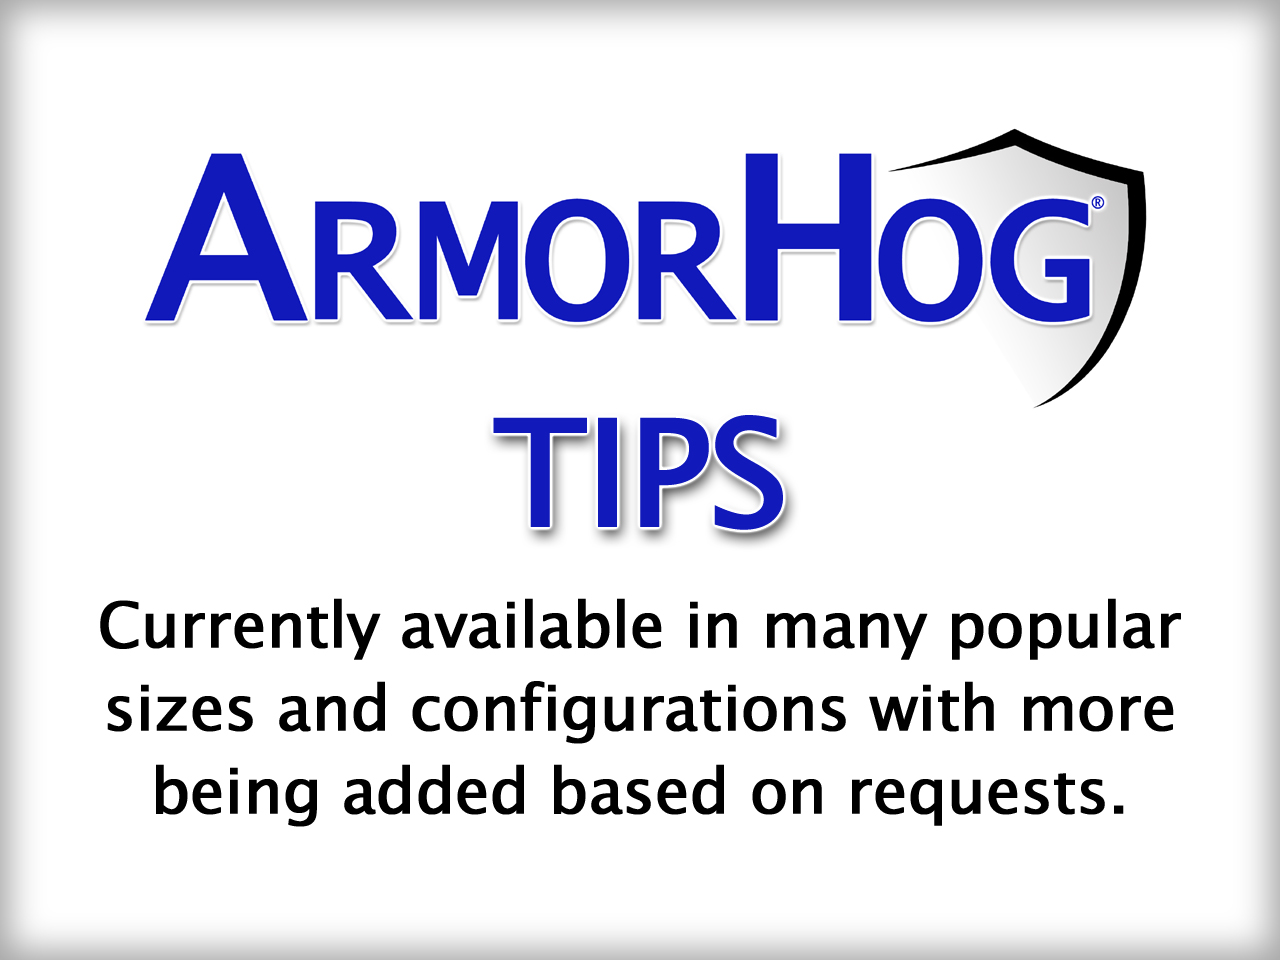 ARMORHOG TIPS copy